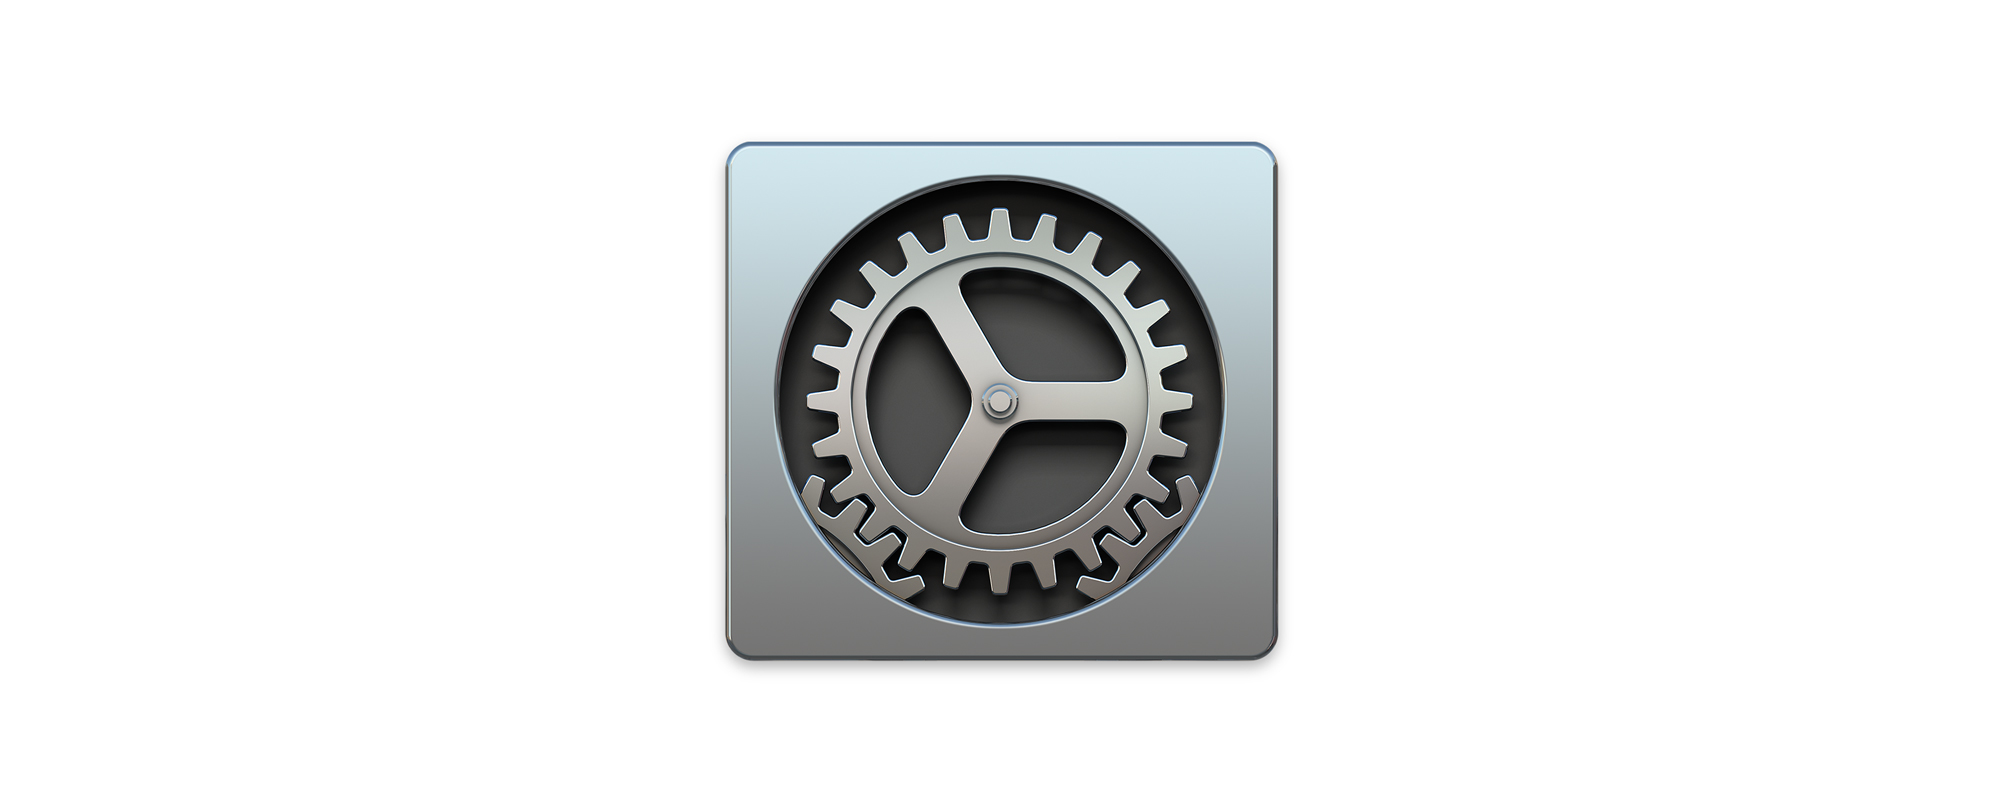 System-Preferences-Icon-OS-X-Yosemite-DP2-hero-2000px